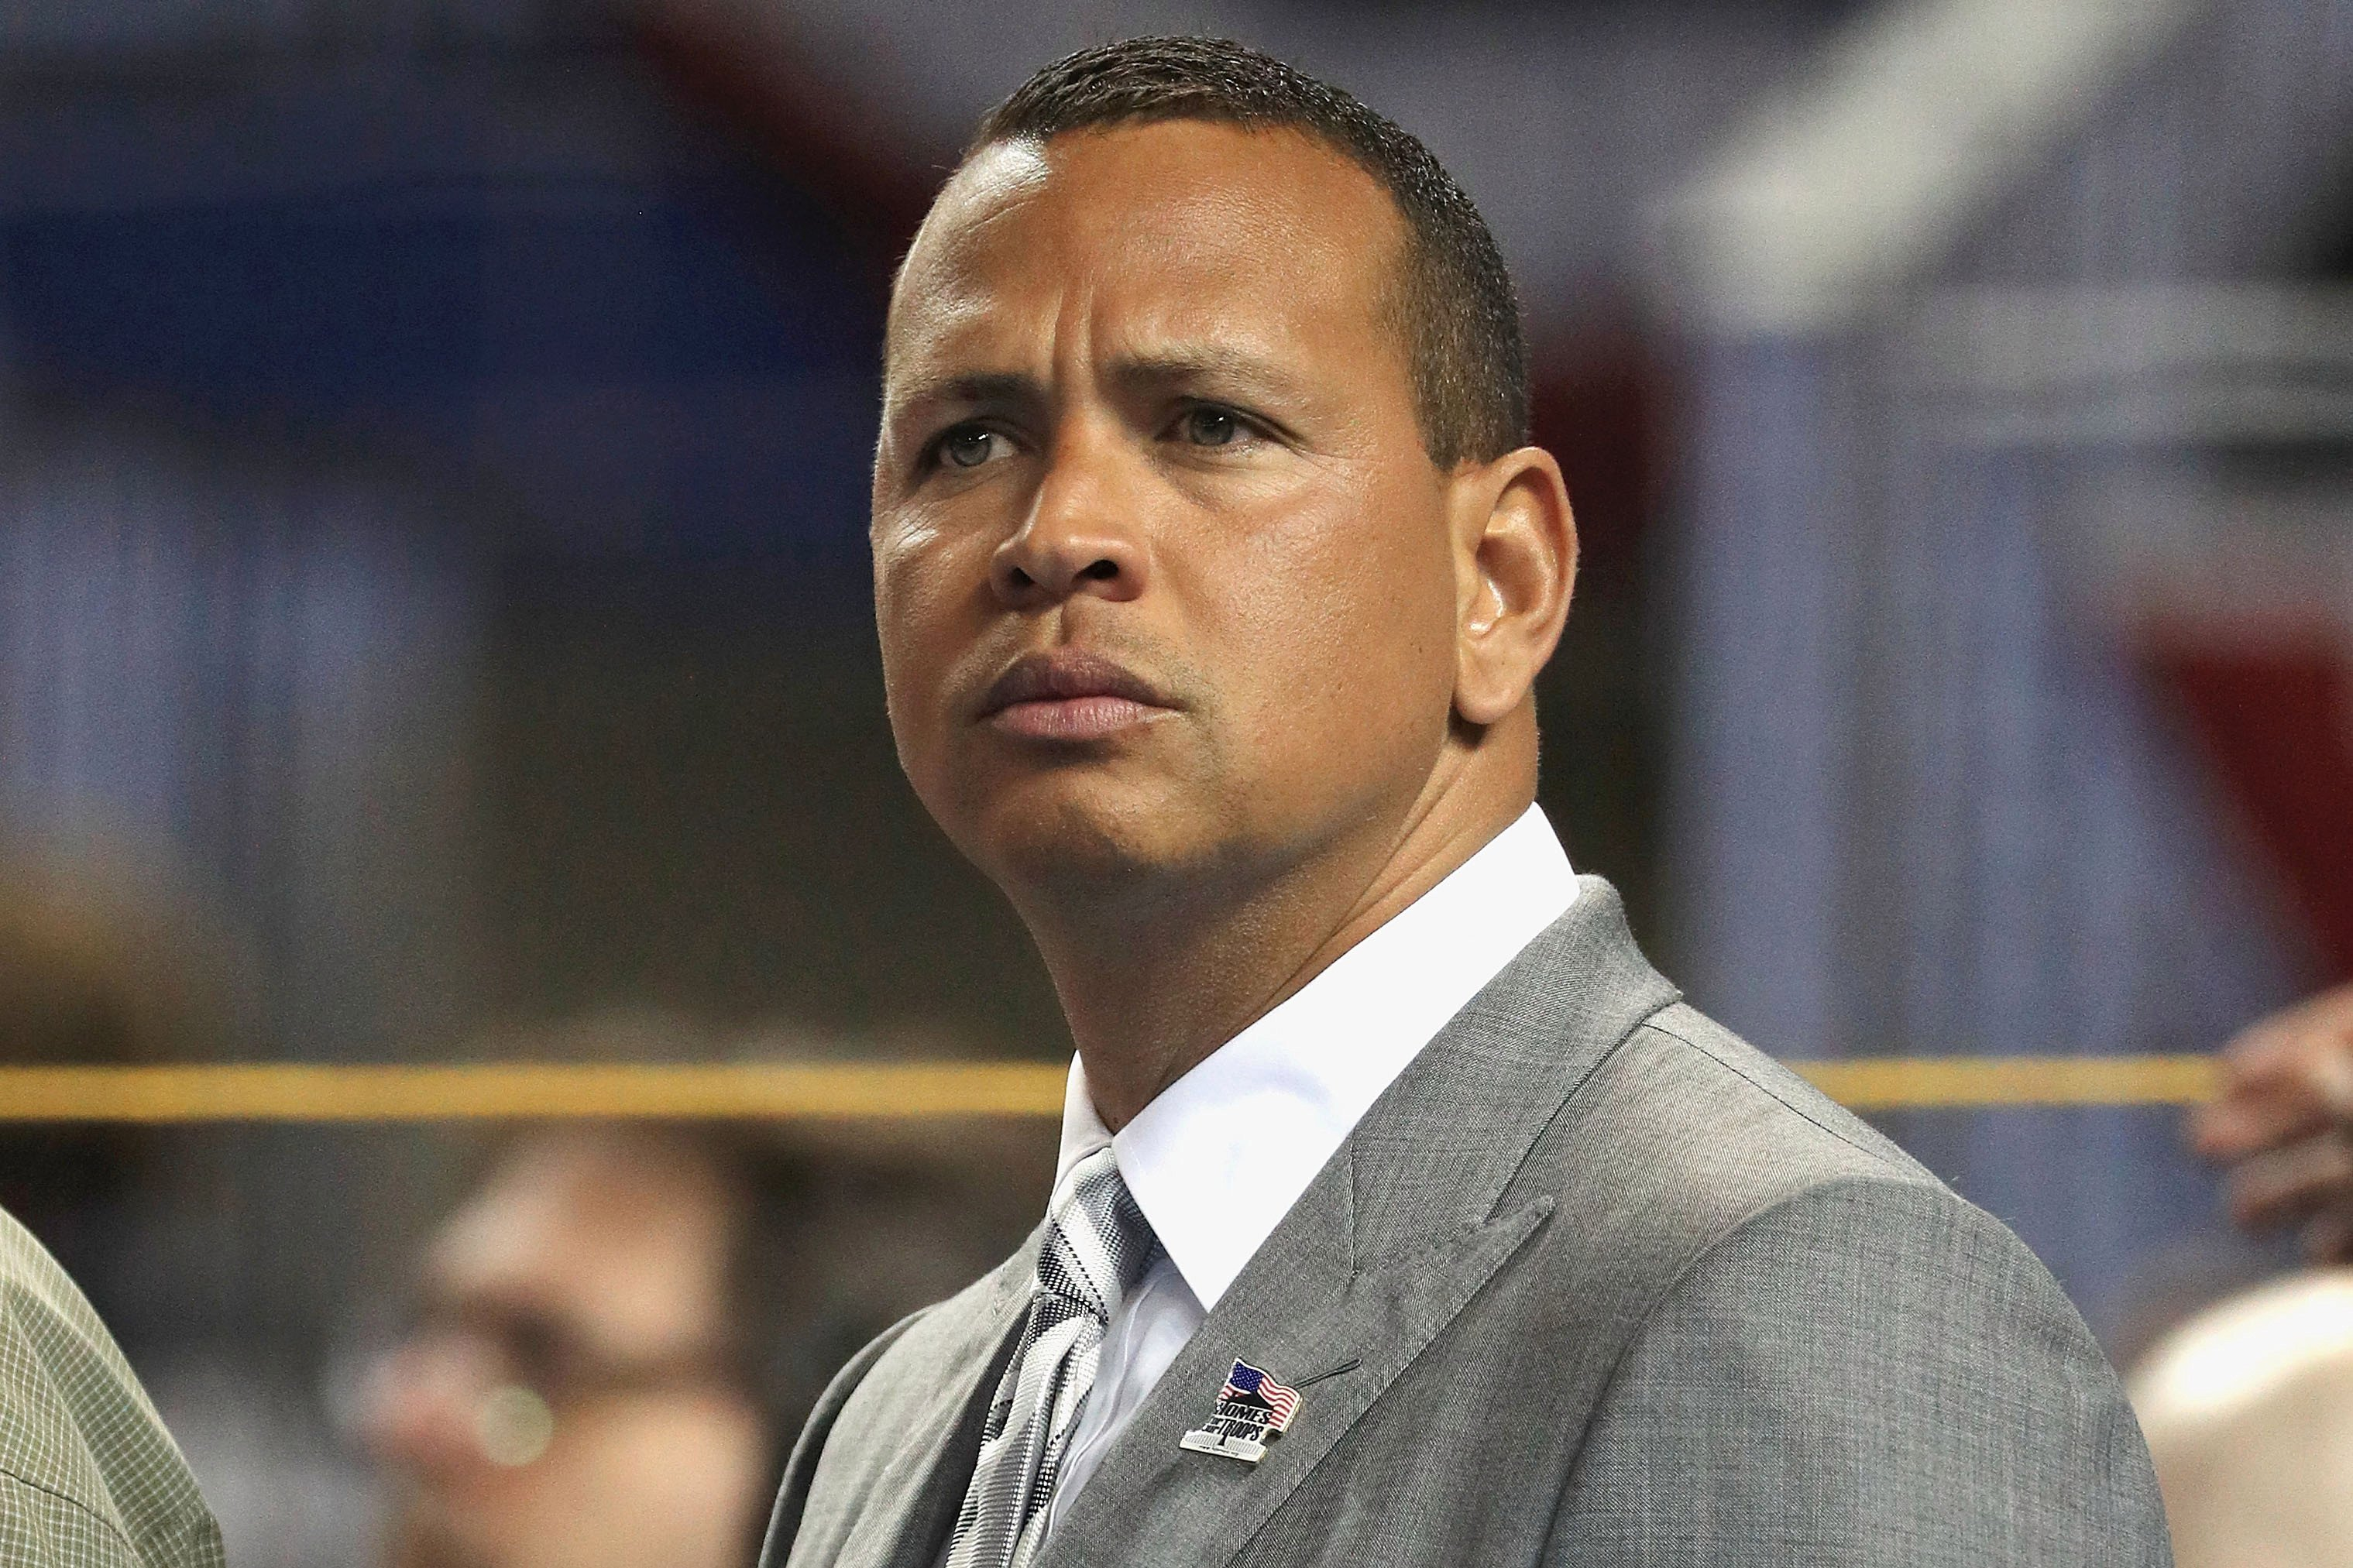 ESPN wants Alex Rodriguez to replace Aaron Boone